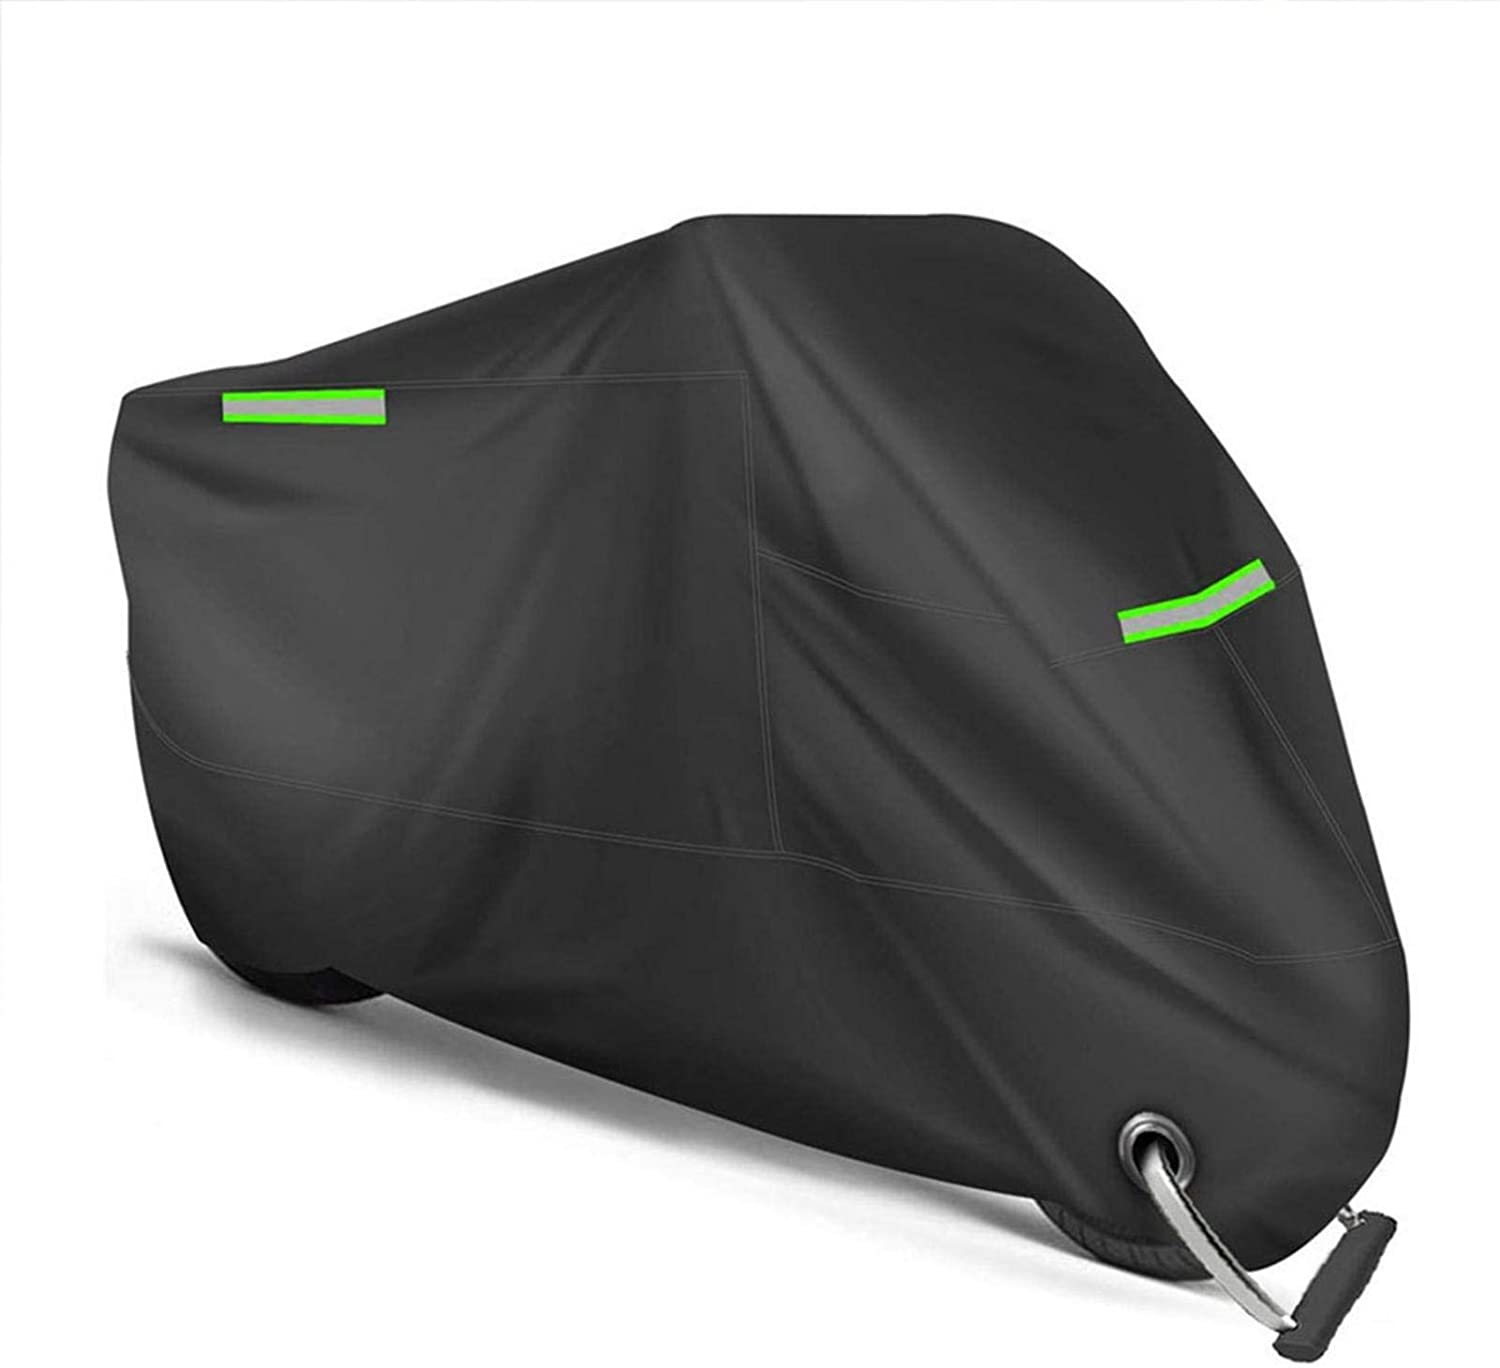 """Motorcycle Cover All Season Universal Weather Premium Quality Waterproof Sun Outdoor Protection Durable Night Reflective with Lock-Holes & Storage Bag Fits up to 96.5"""" Motorcycles Vehicle Cover"""